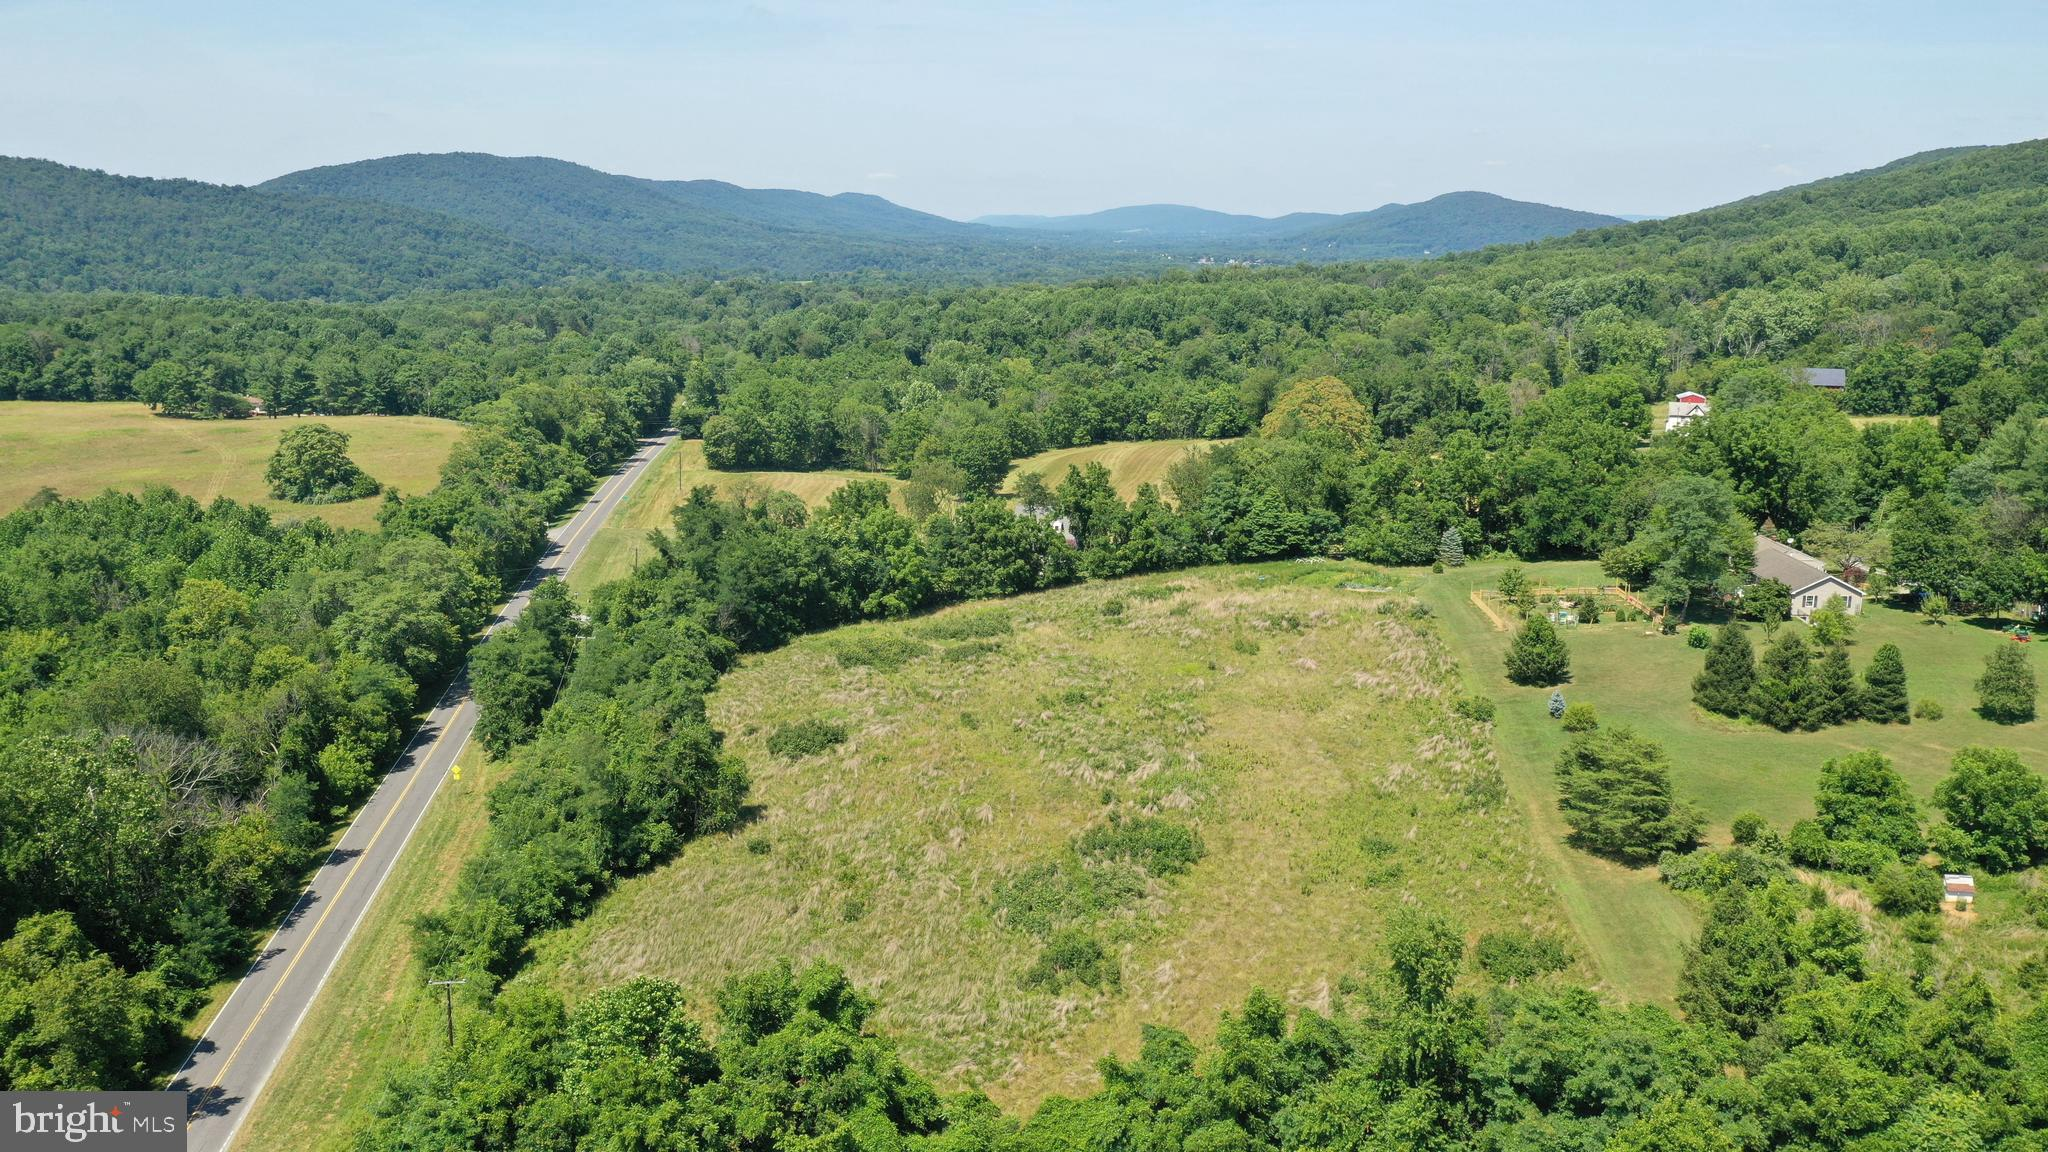 Build your dream home here! 21+  private acres off of Snider lane in the Hillsboro area.  Lovely land with gentle slope and mountain views.  Enjoy the country community with nearby Nell Boone park and Community Center.  Surrounded by trees and beautiful vistas,  just up the road is the Blue Ridge Center for Environmental Stewardship. A 900 acre nature preserve with trails and events centered on nature and wild life preservation.  Located near the Appalachain trail, surrounded by wineries, breweries and farm to table dining.  Minutes to Historic Harpers Ferry, West Virginia.  Currently in open space land use which expires in December 2020. Seller not responsible for rollback taxes.